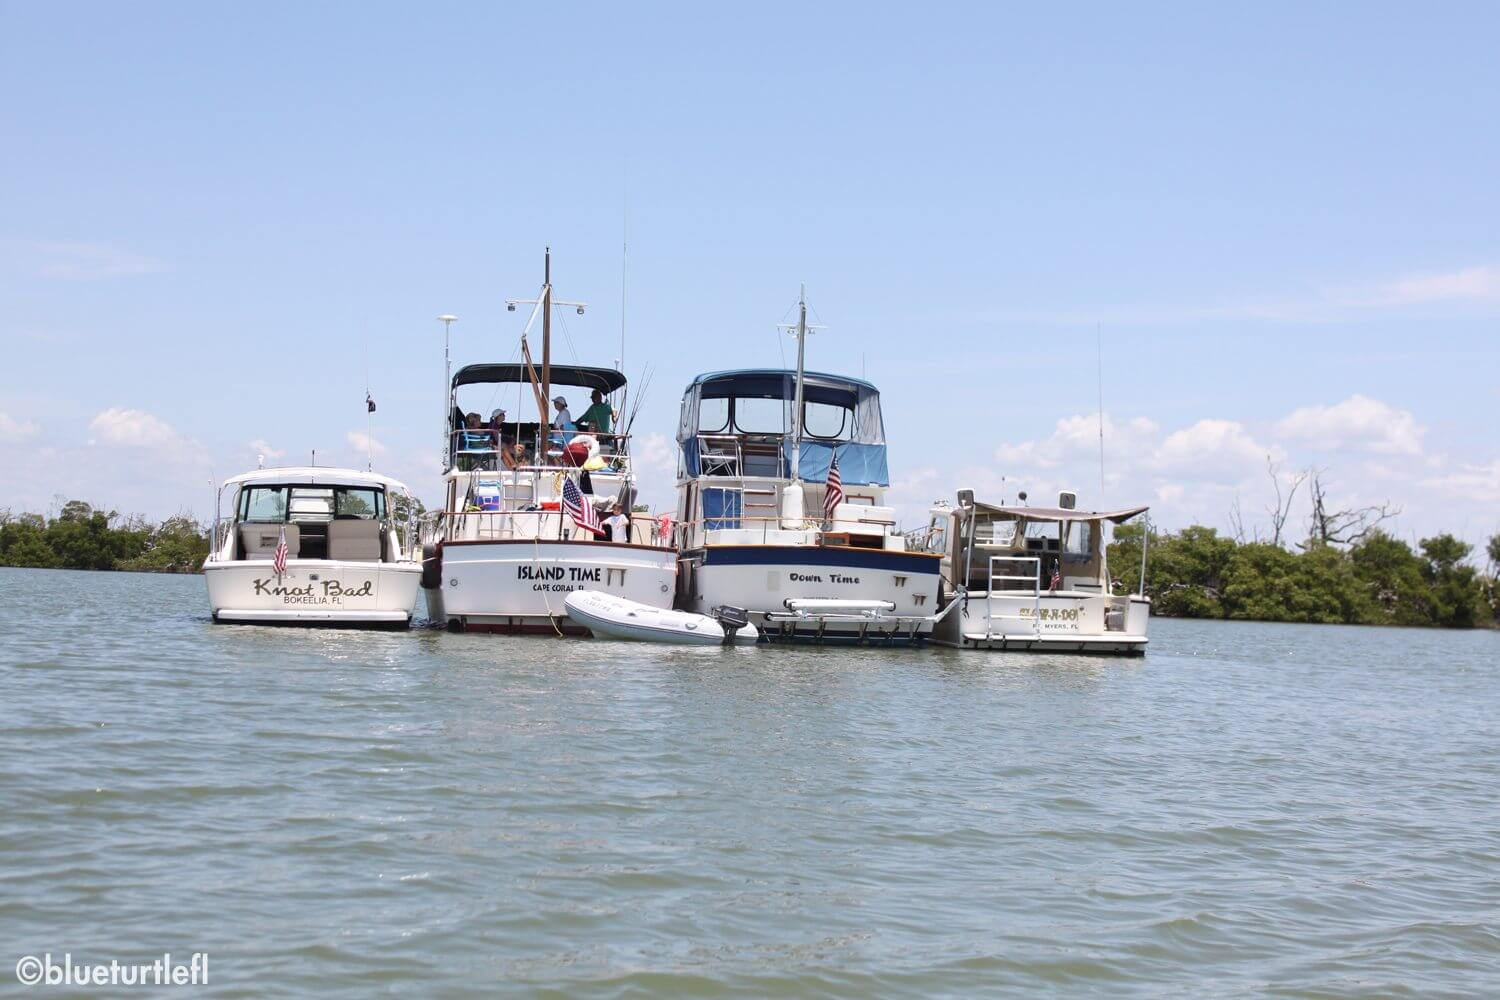 image of 4 boats